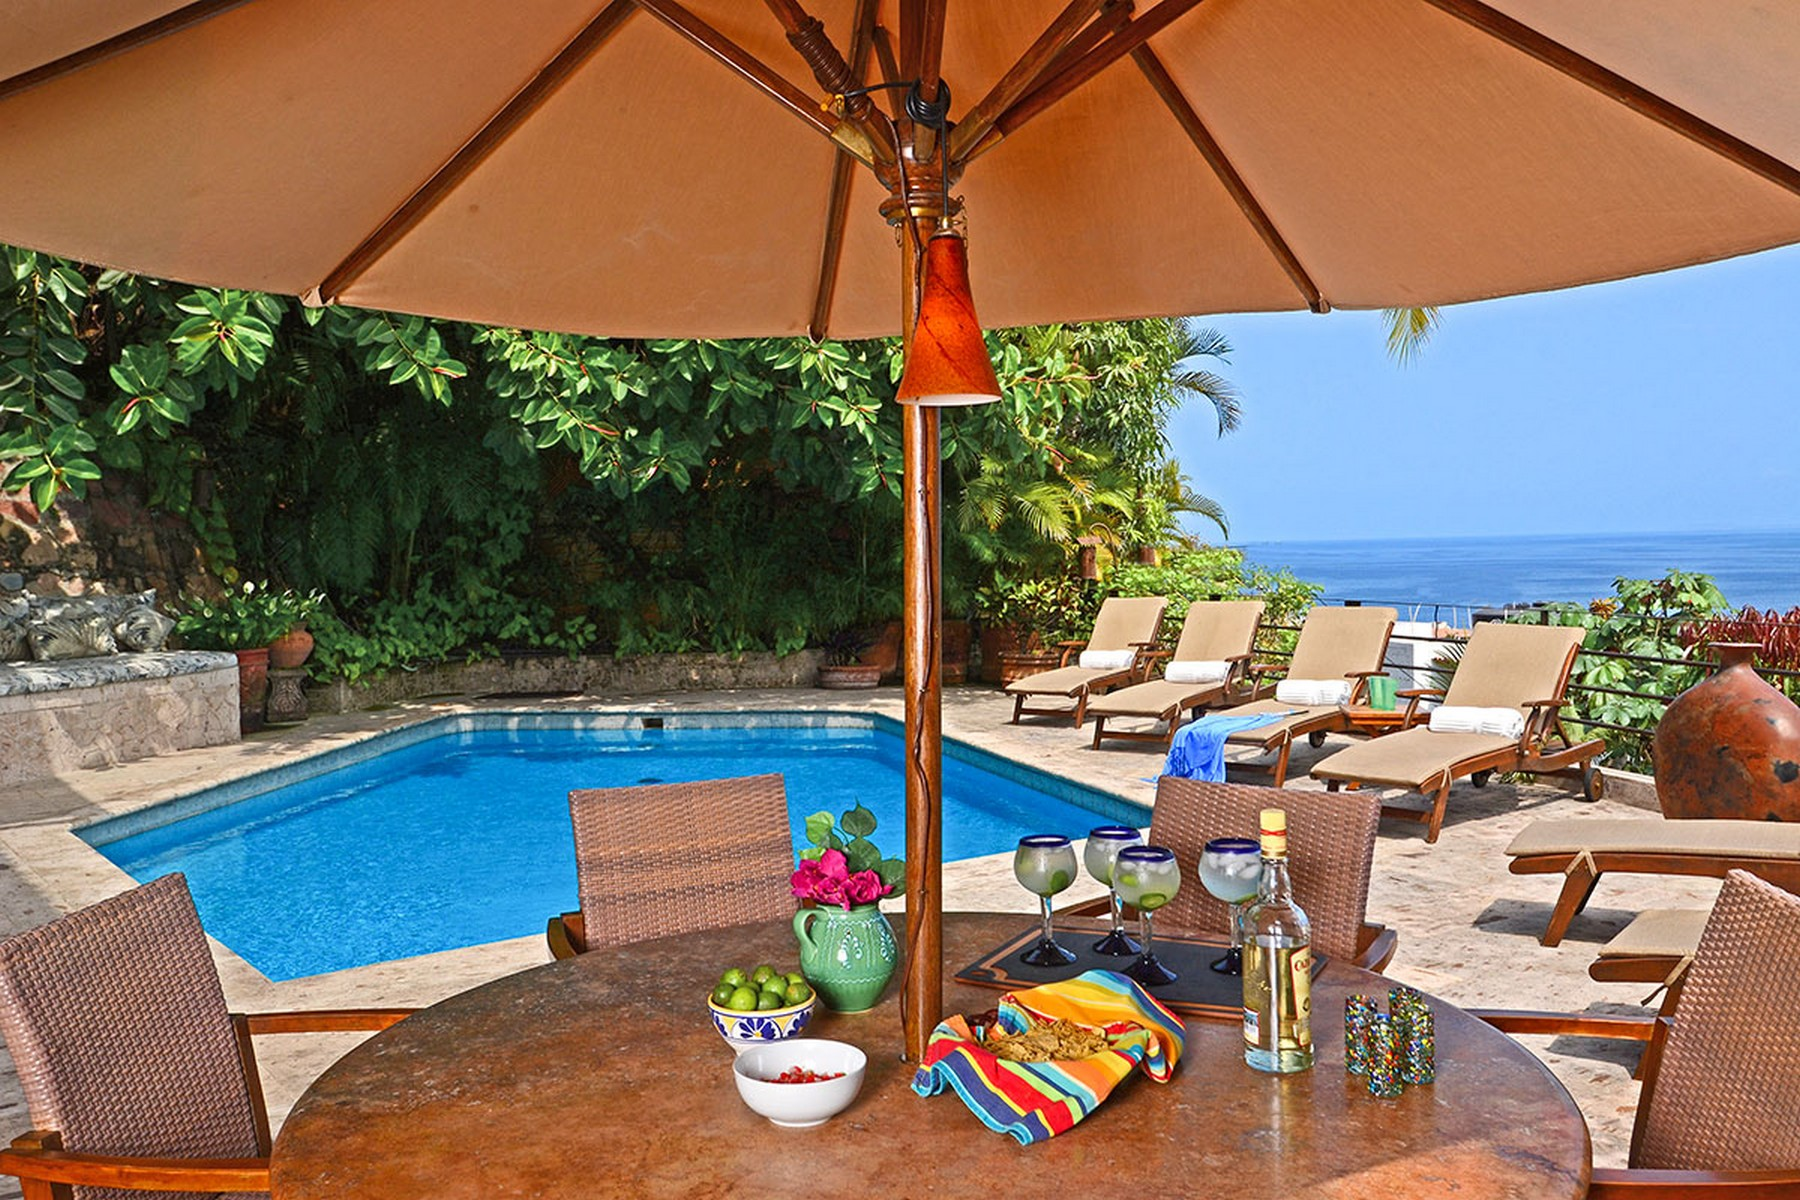 Single Family Home for Rent at VACATION RENTAL CASA ILEANA Puerto Vallarta, 48380 Mexico